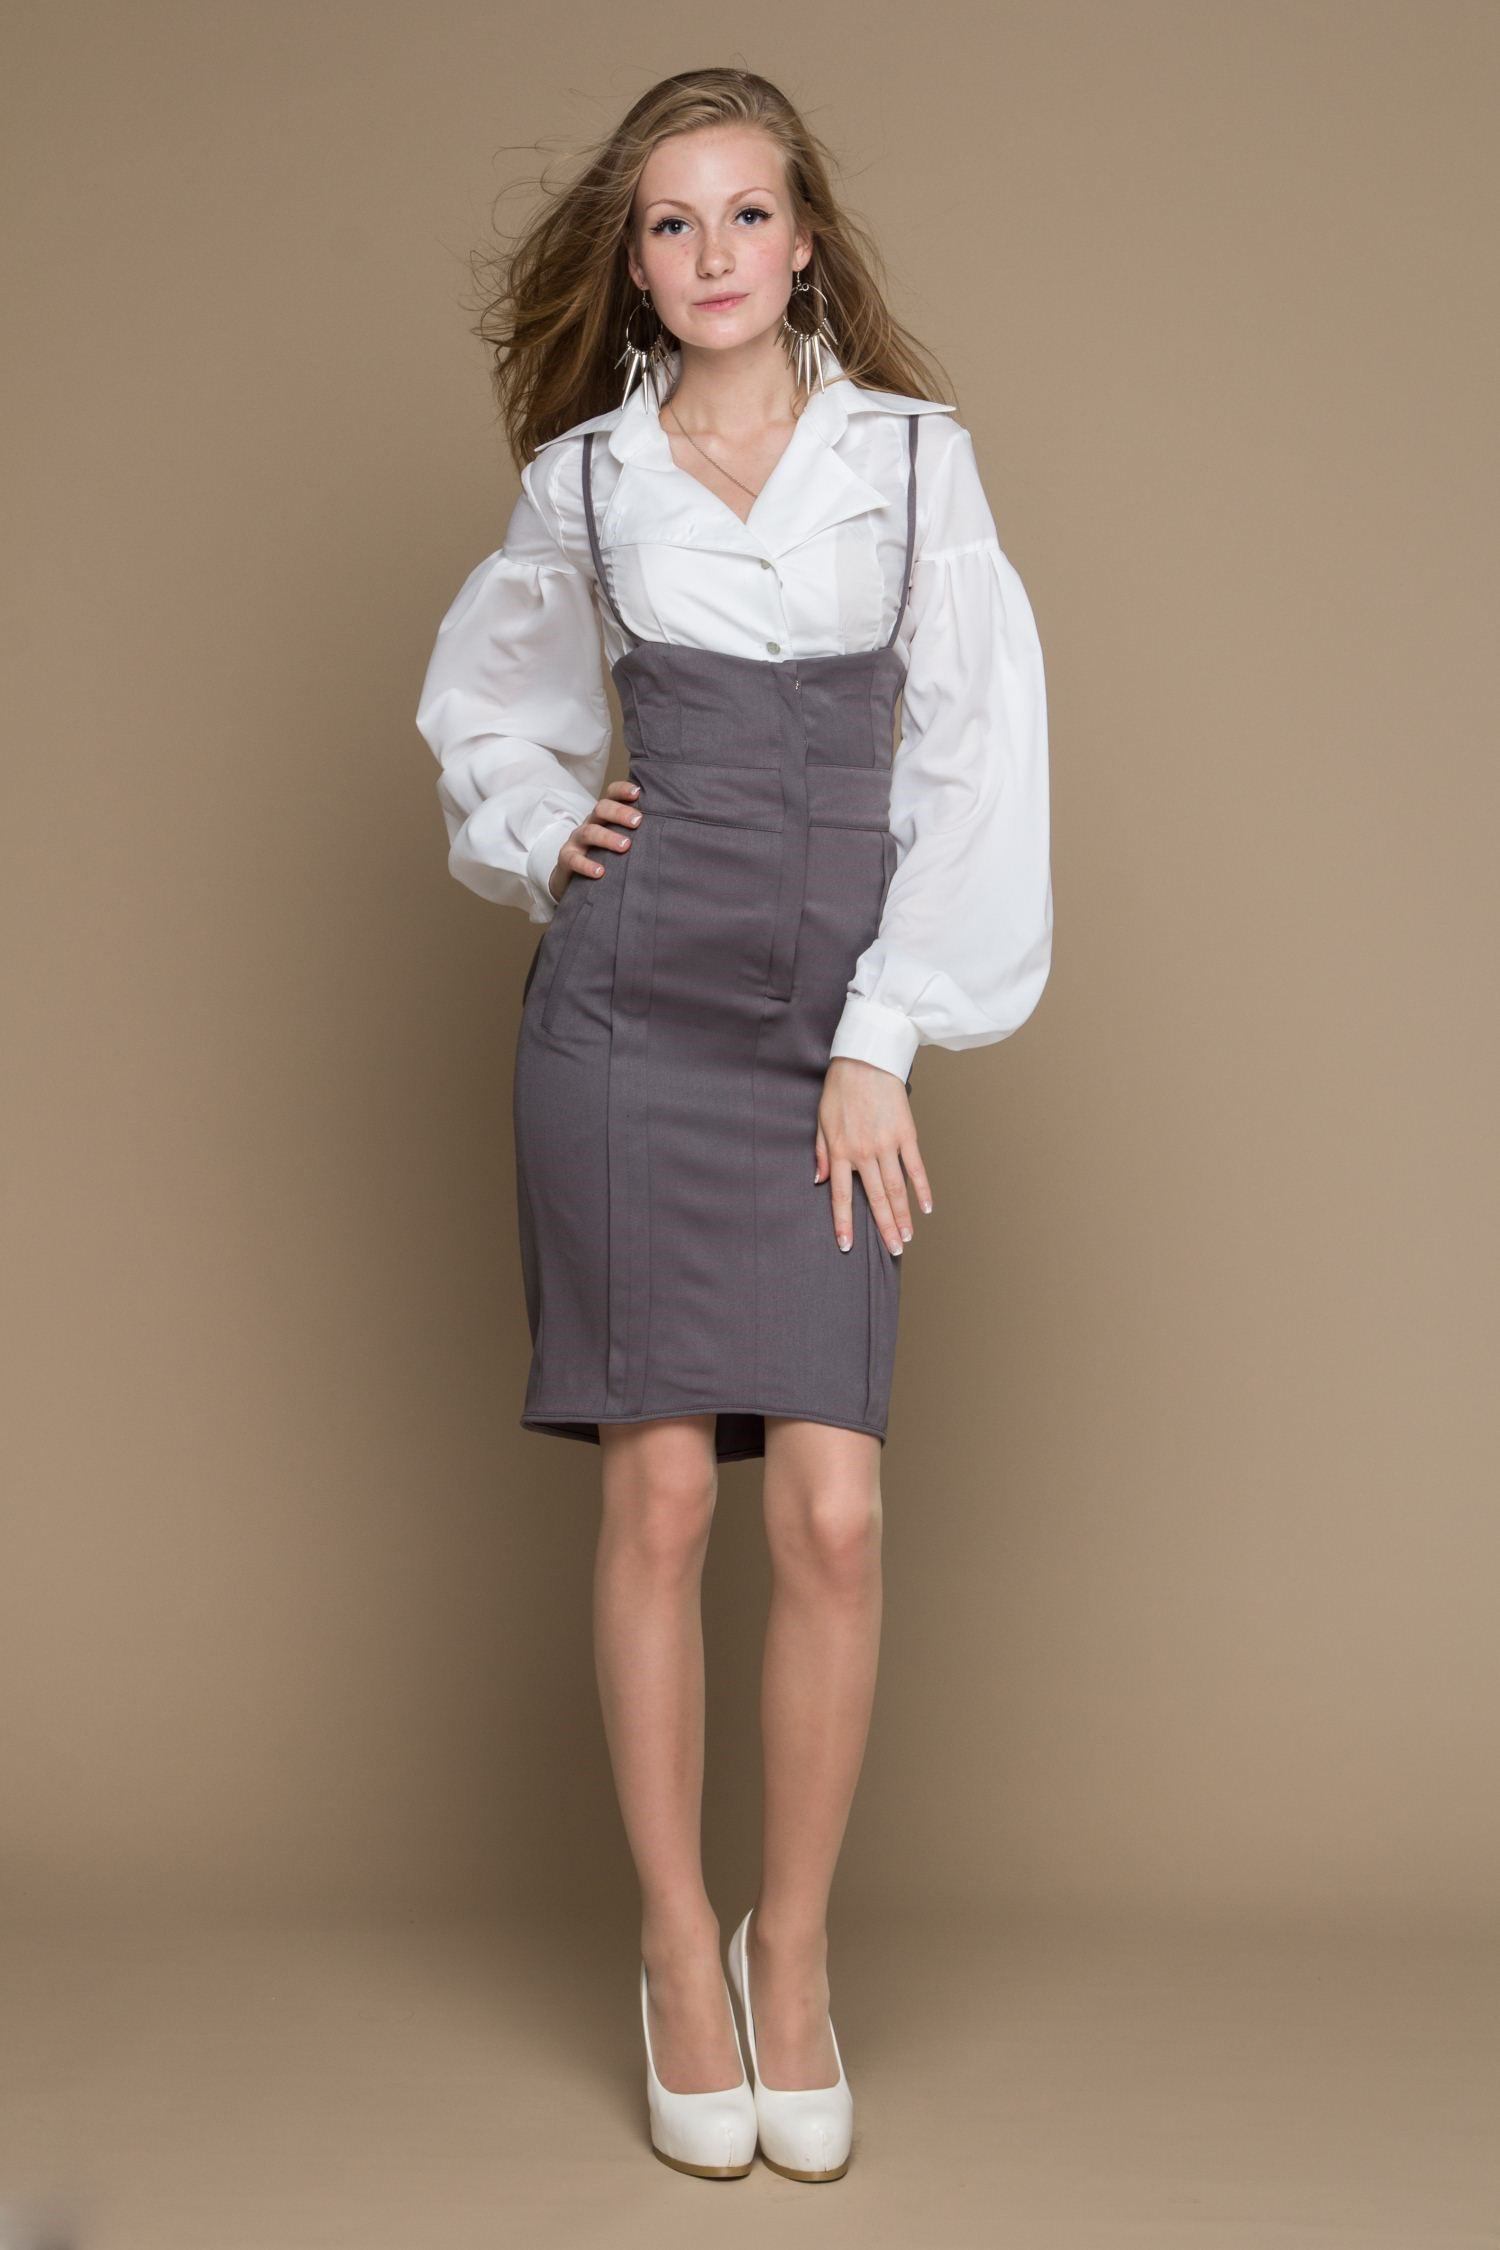 Smart skirt with high waist, lace and bow behind. lace insert fitted faux leather skirt